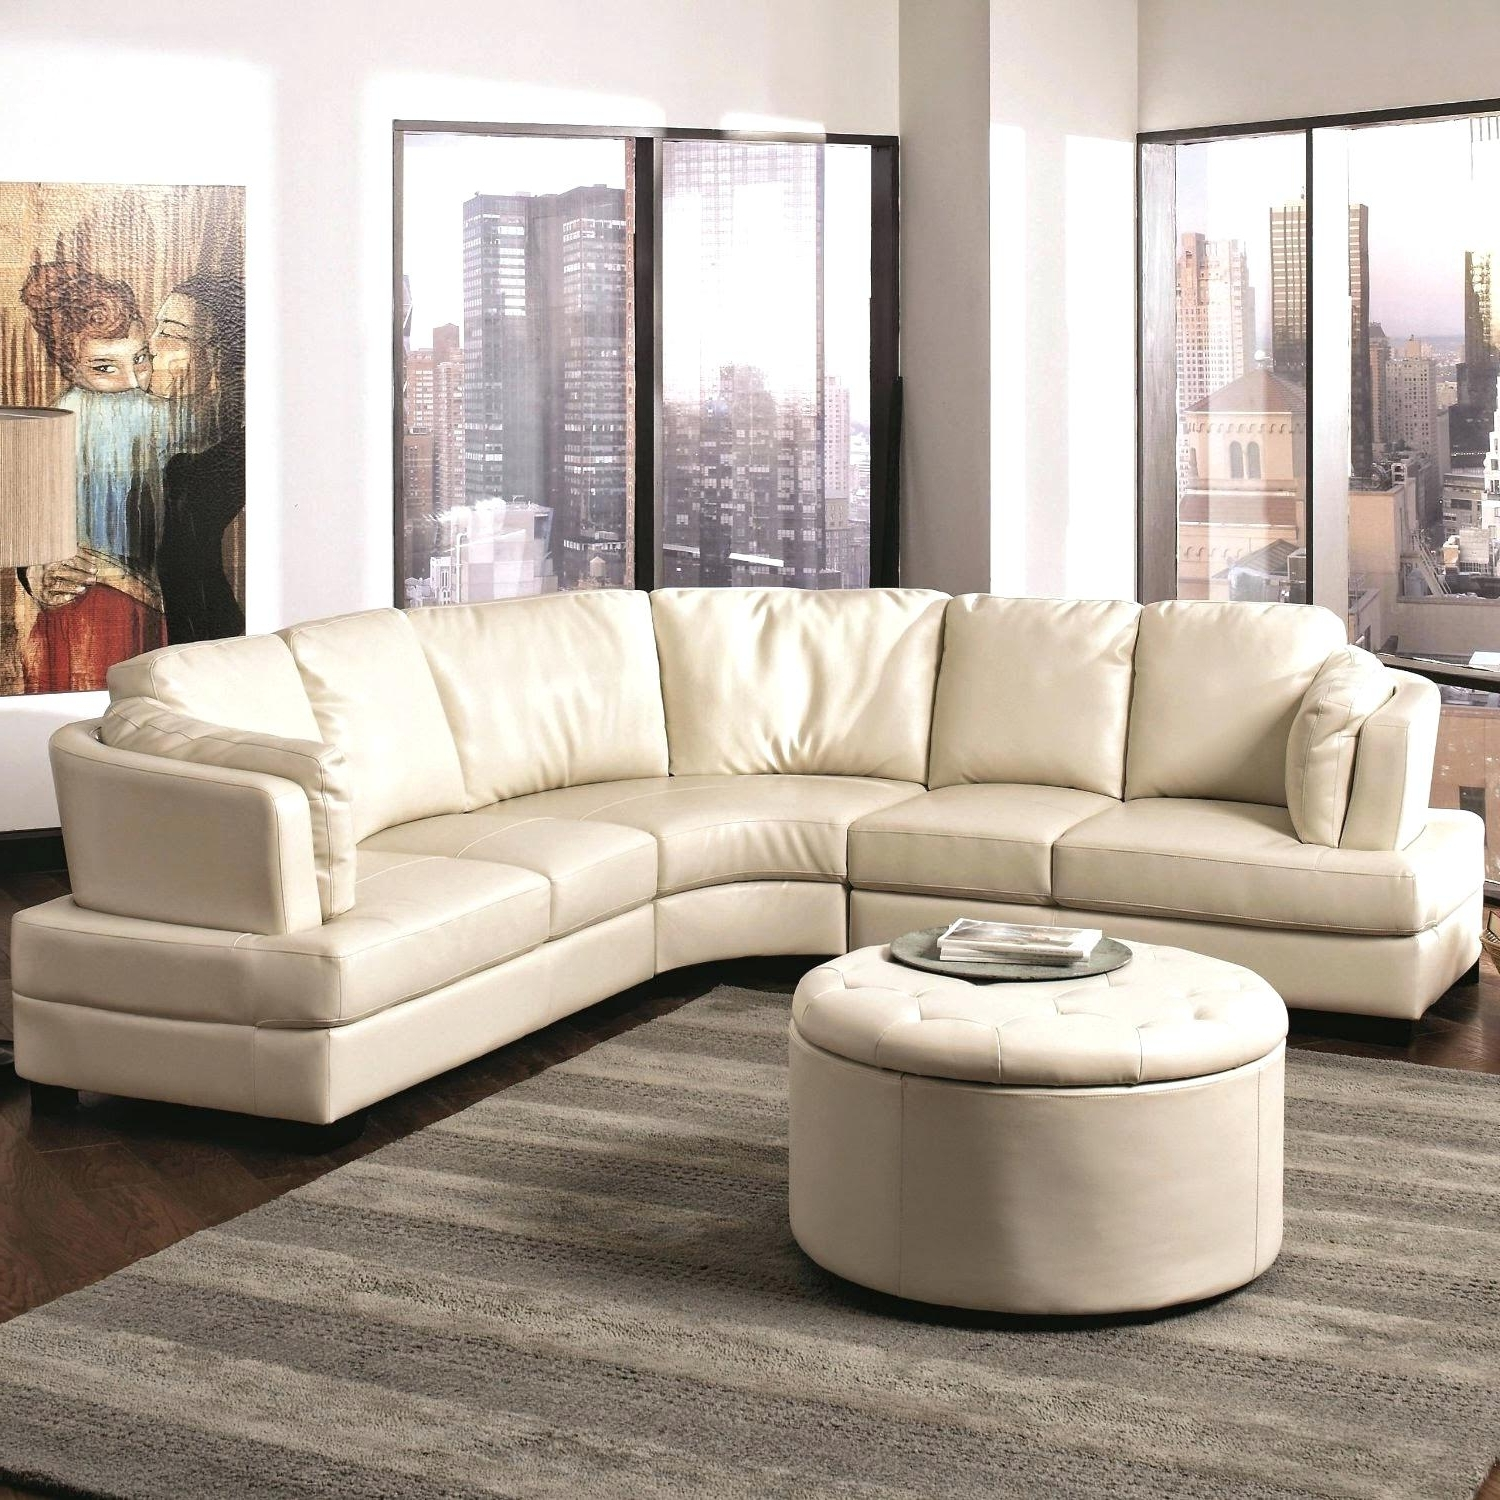 2017 Sectional Sofa Sale Sa Couches For Near Me Liquidation Toronto Intended For Newmarket Ontario Sectional Sofas (View 3 of 15)